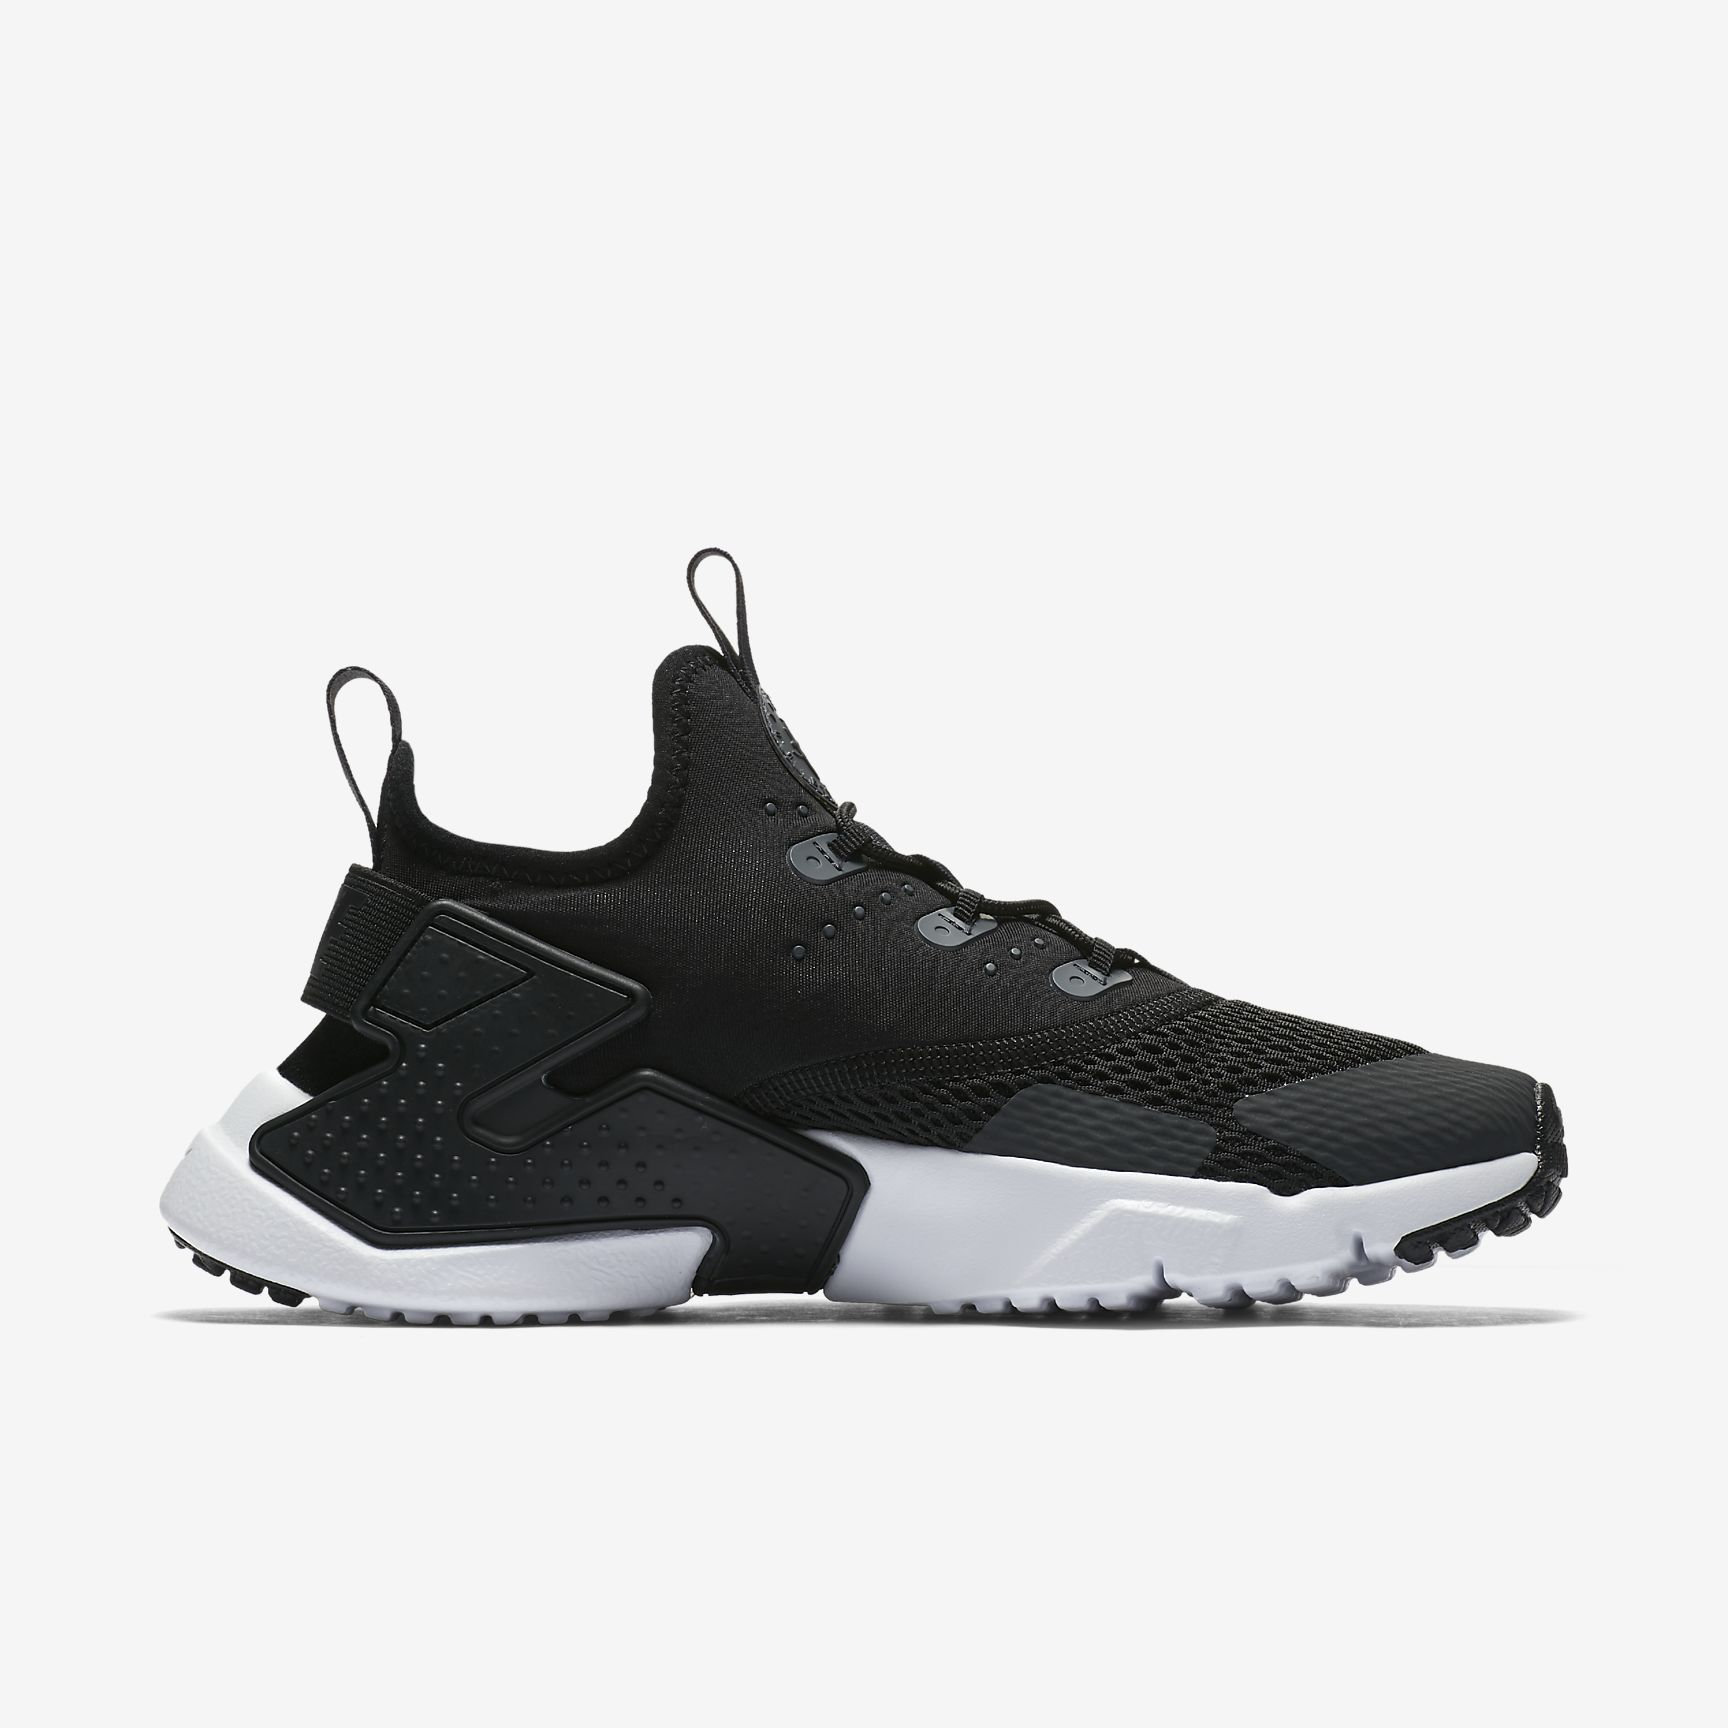 quality design 11d4d c10ad Chaussures Homme AIR HUARACHE Drift Noir Anthracite Blanc Anthracite